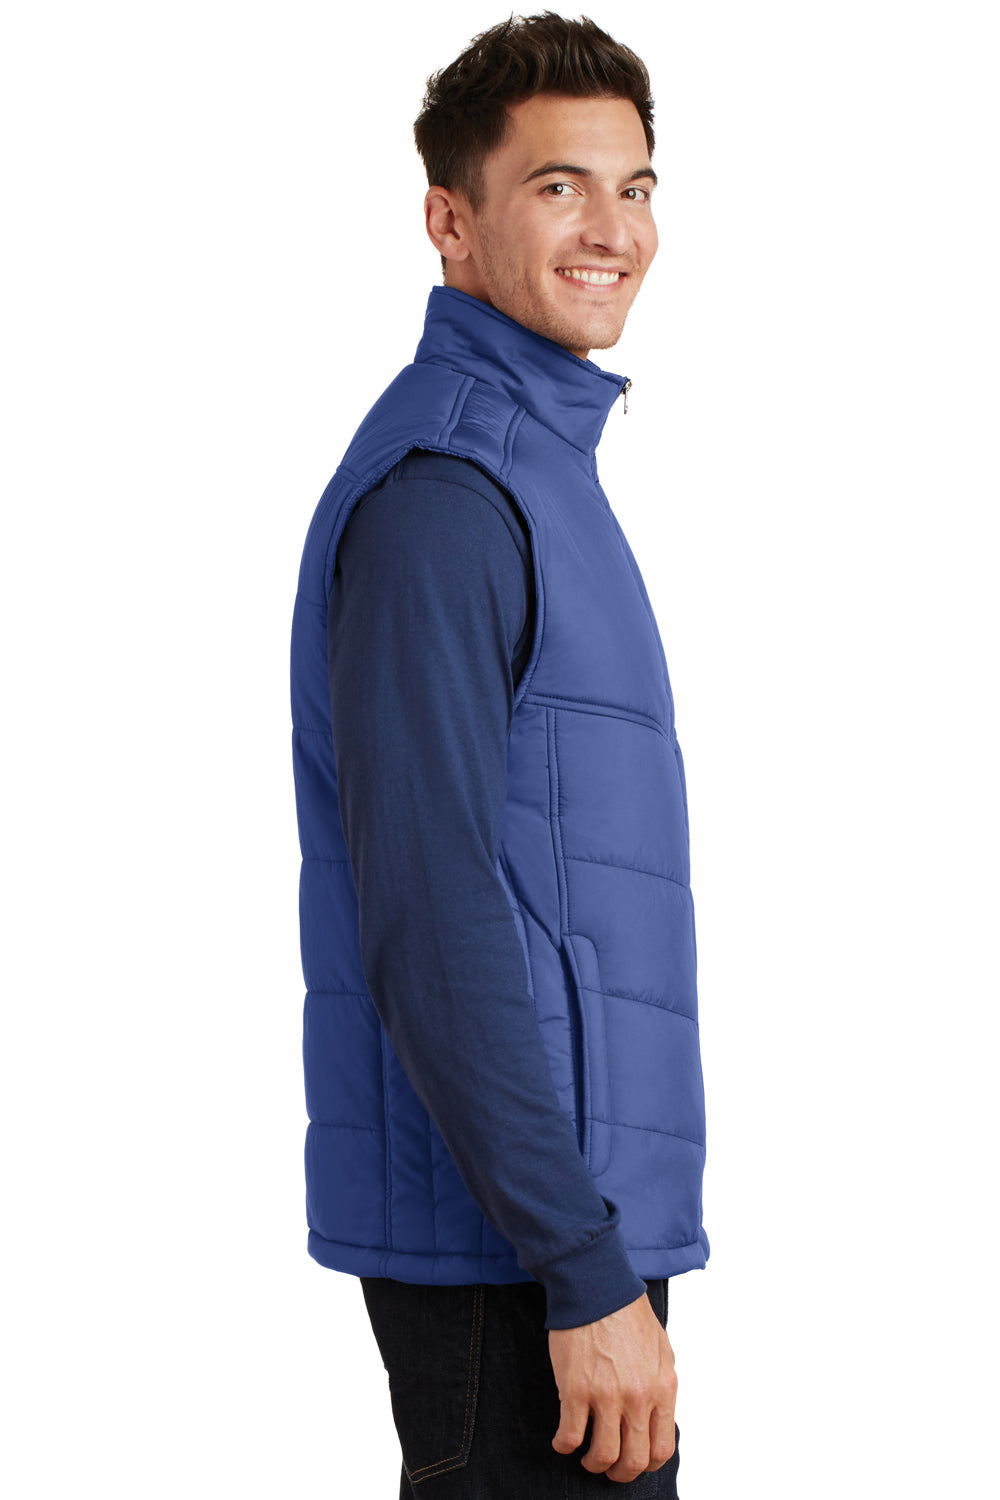 Port Authority J709 Mens Wind & Water Resistant Full Zip Puffy Vest Mediterranean Blue Side